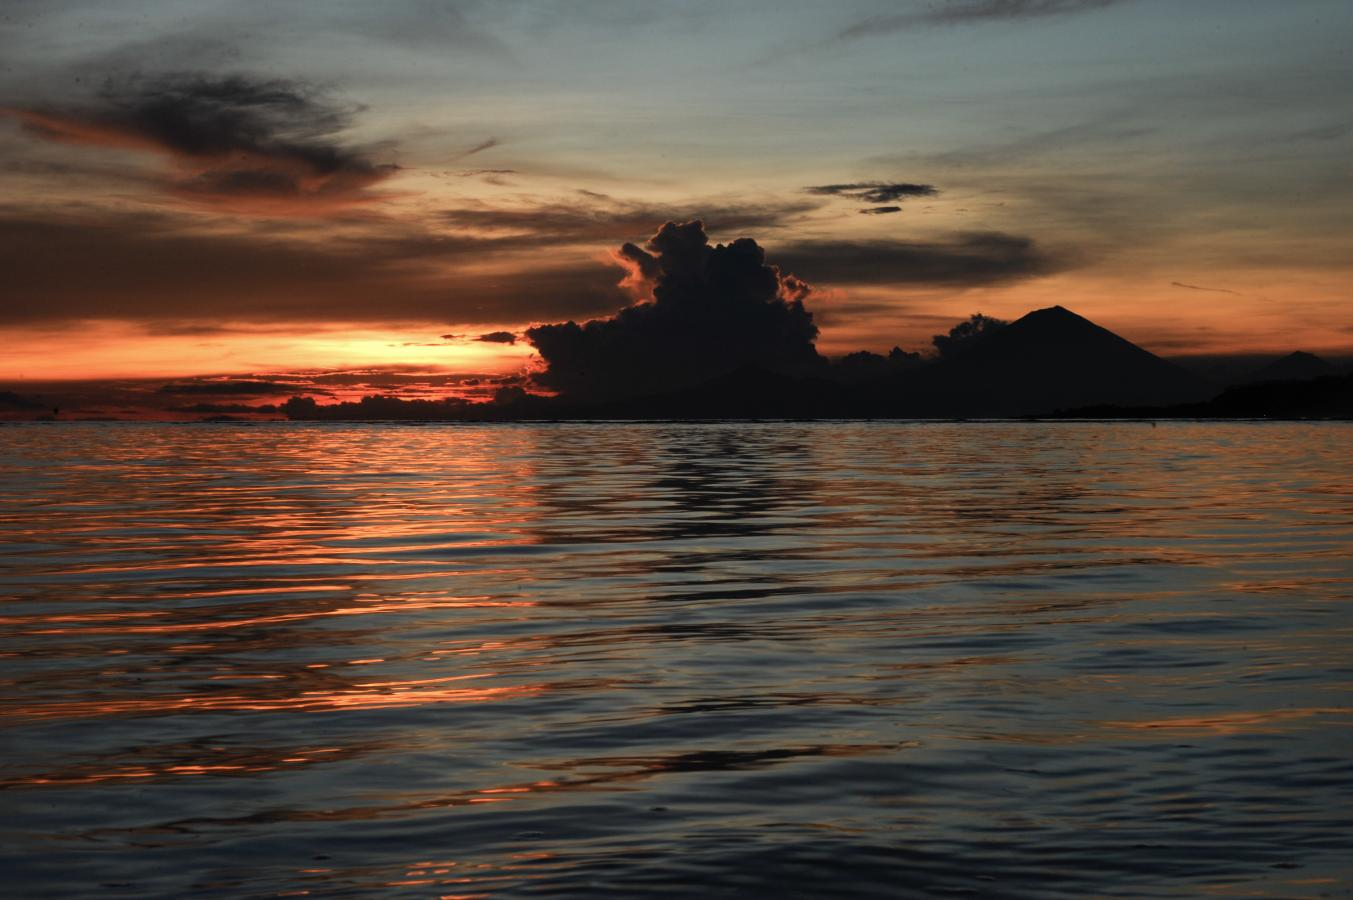 sunset-at-gili-air-2010